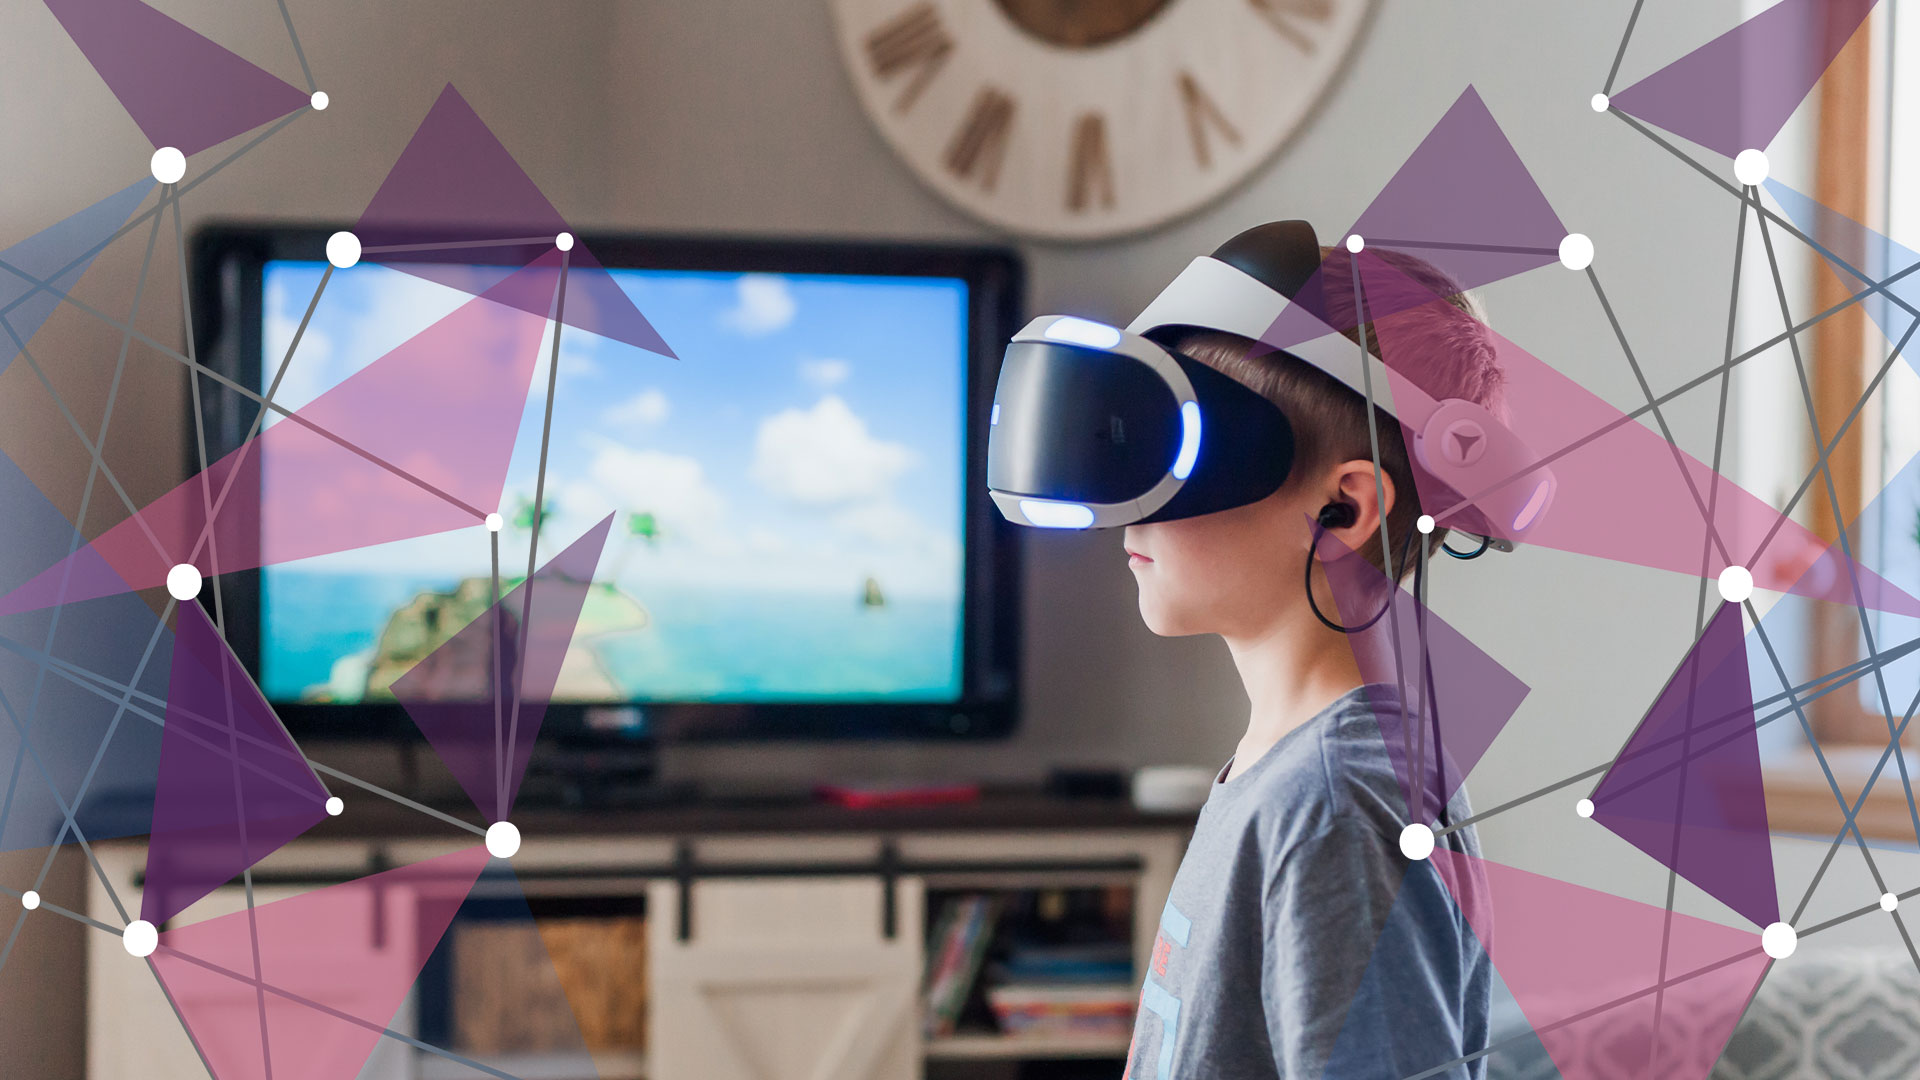 Child wearing VR headset for online gaming